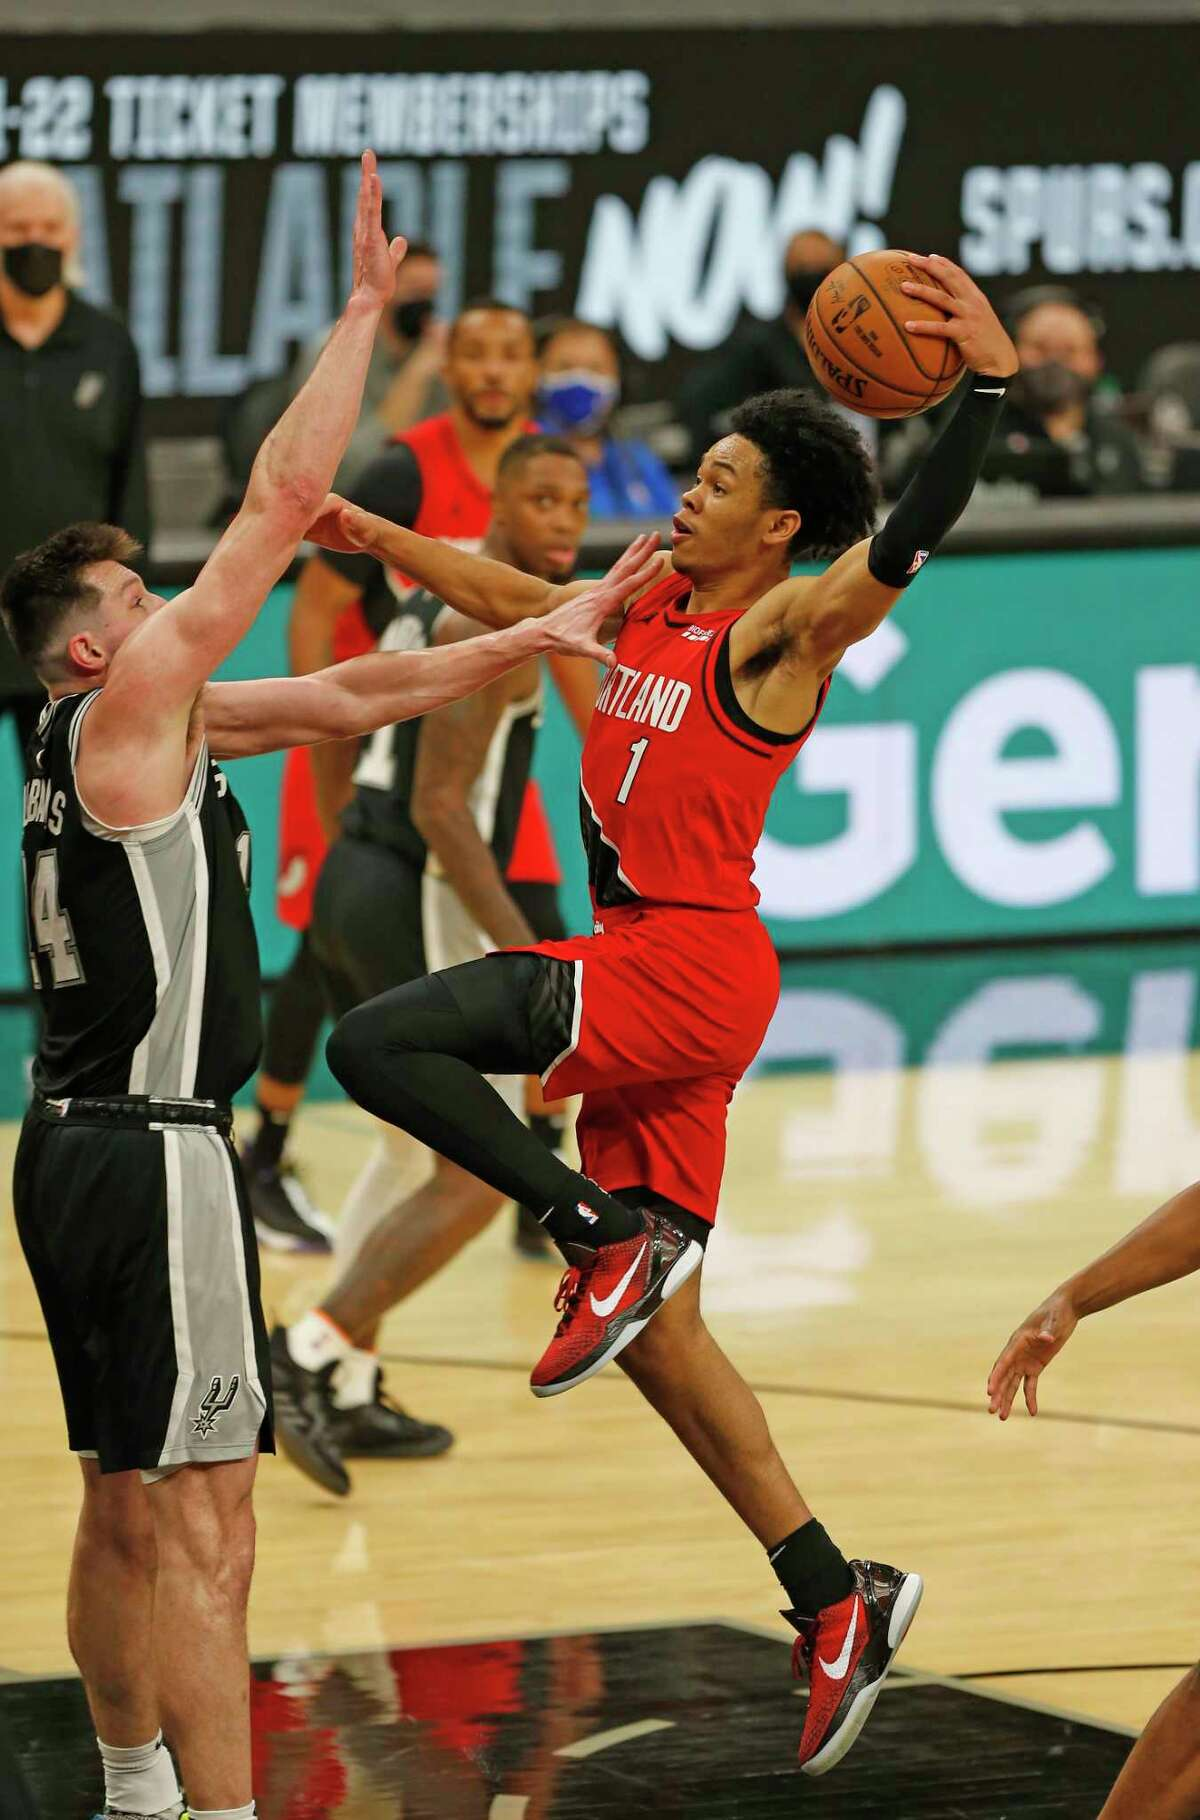 SAN ANTONIO, TX - APRIl 16: Arnfernee Simmons #1 of the Portland Trailblazers drives over Drew Eubanks #14 of the San Antonio Spurs in the second half at AT&T Center on April 16, 2021 in San Antonio, Texas. NOTE TO USER: User expressly acknowledges and agrees that , by downloading and or using this photograph, User is consenting to the terms and conditions of the Getty Images License Agreement. (Photo by Ronald Cortes/Getty Images)